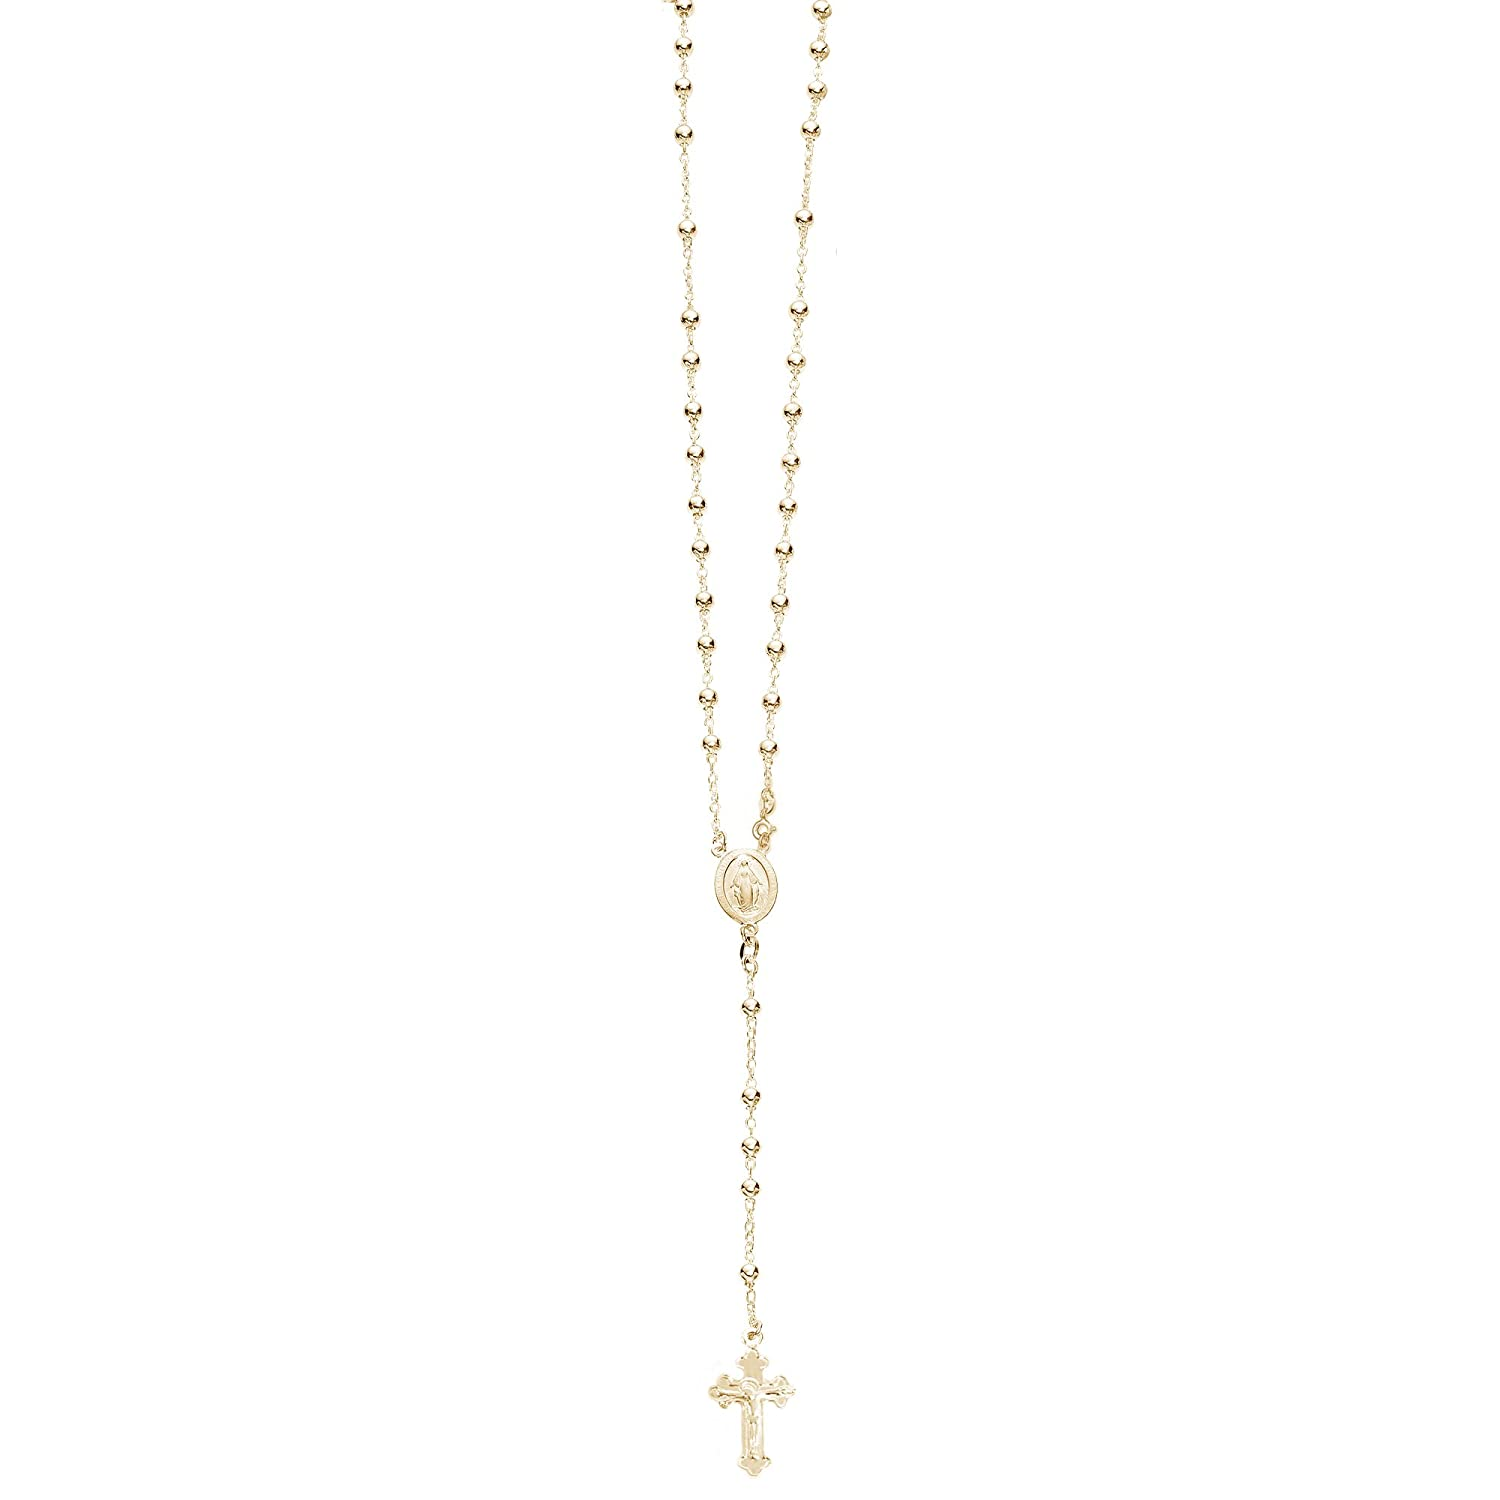 35d647d652bc1 Ritastephens Sterling Silver or Gold-tone 3mm Rosary Bead Necklace Virgin  Mary Cross Made in Italy